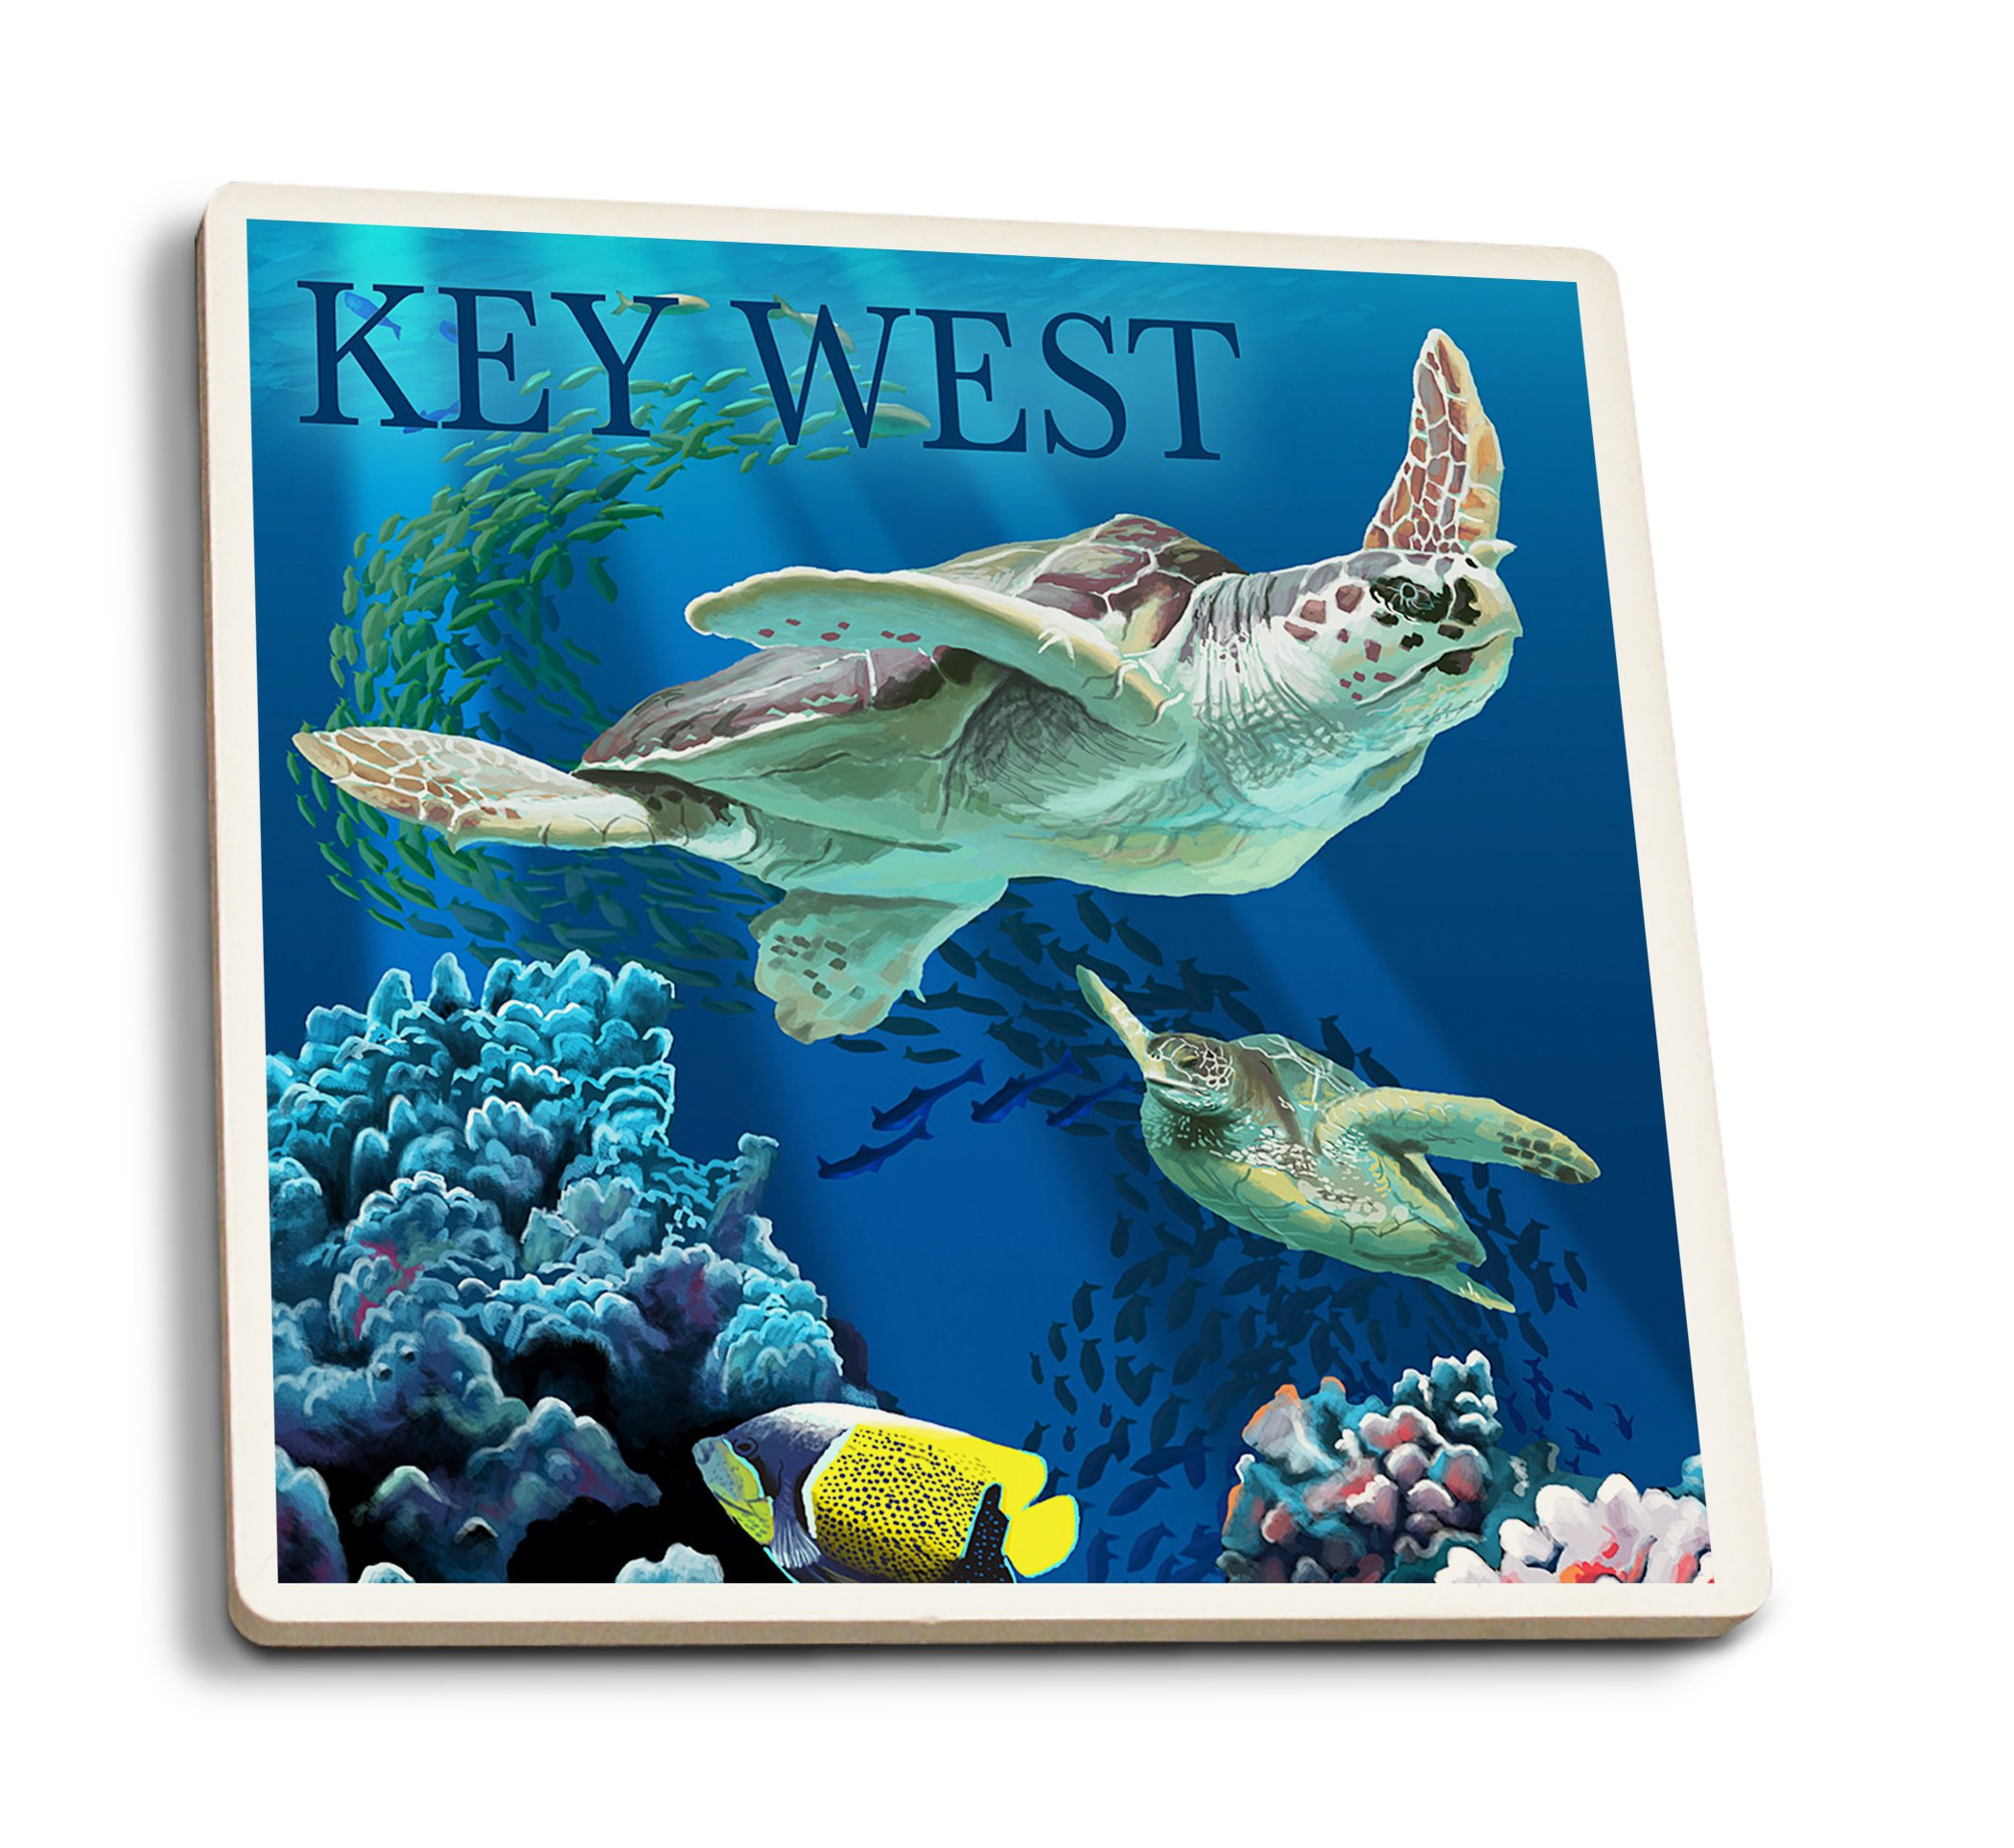 Lantern Press Key West, Florida - Sea Turtles (Set of 4 Ceramic Coasters - Cork-Backed, Absorbent) by Lantern Press